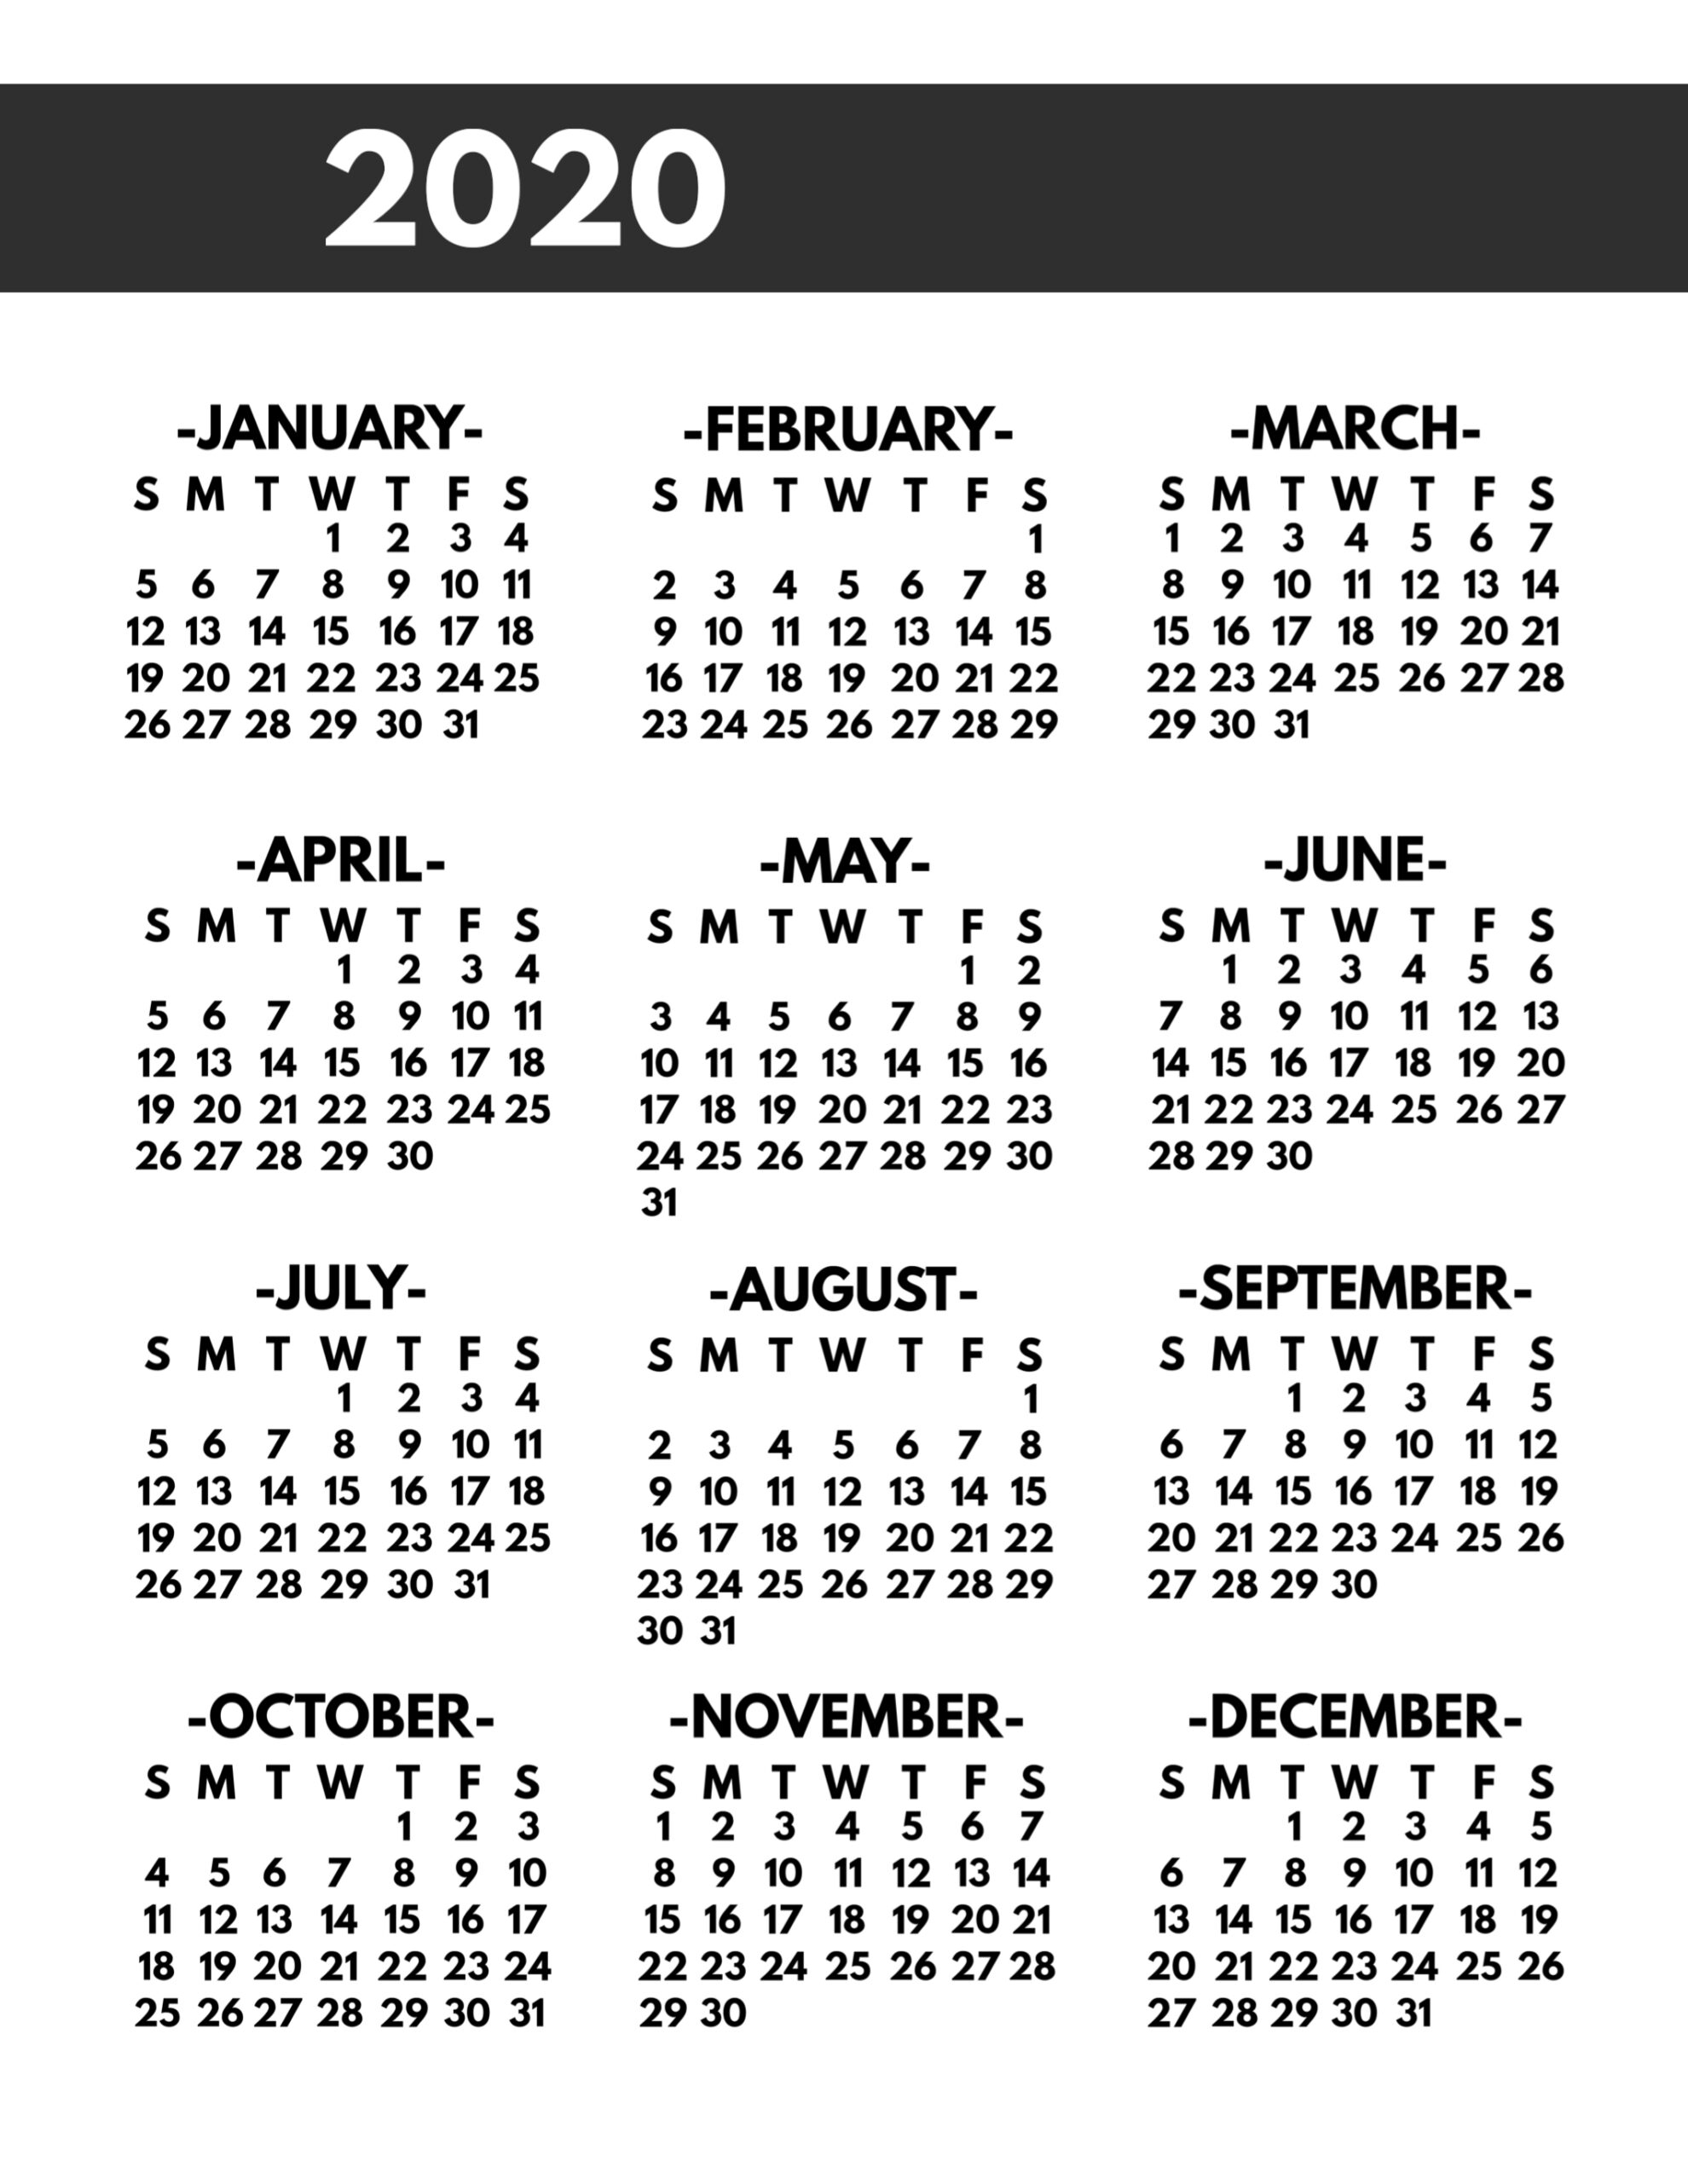 2020 Printable One Page Year At A Glance Calendar - Paper inside Printable Year At A Glance 2020 Calendar